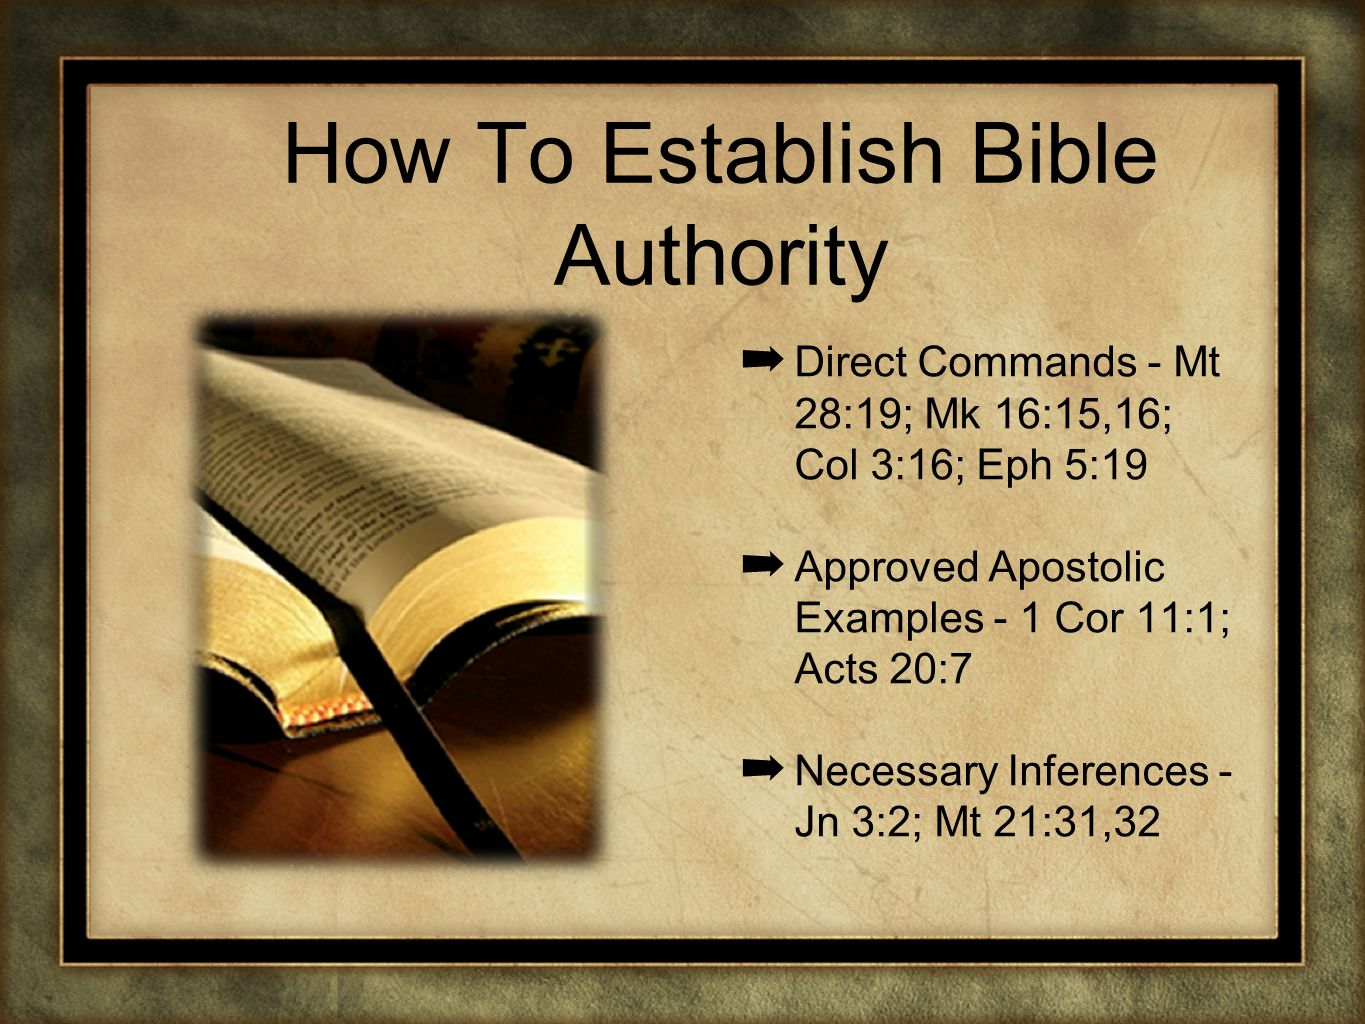 How To Establish Bible Authority Direct Commands - Mt 28:19; Mk 16:15,16; Col 3:16; Eph 5:19 Approved Apostolic Examples - 1 Cor 11:1; Acts 20:7 Neces